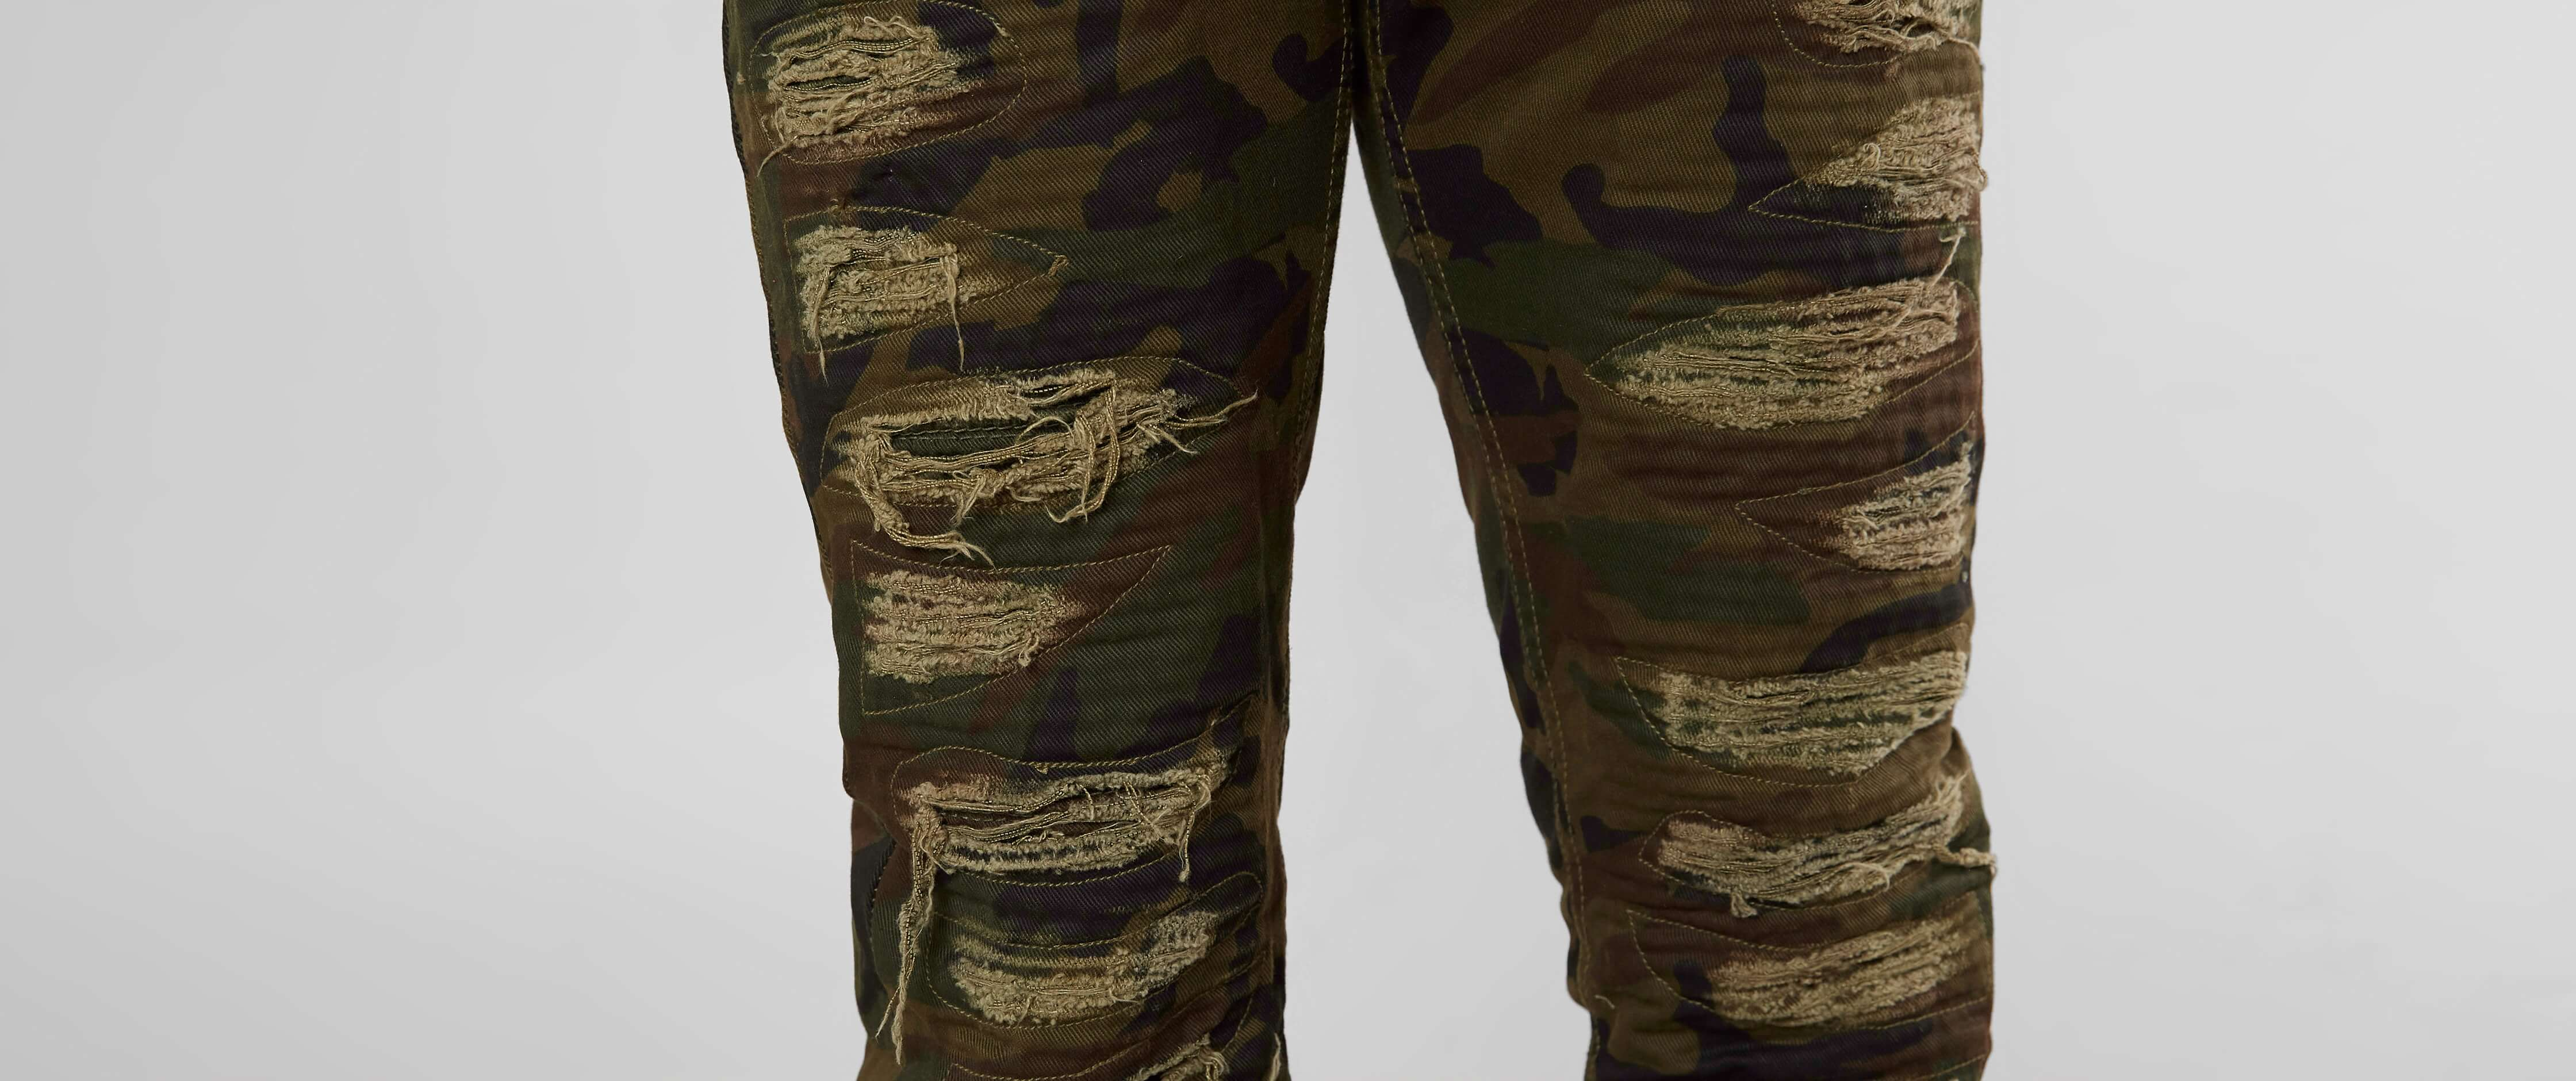 b2fbe3dc81 Grindhouse Shredded Camo Jeans  7SwPm1613263  -  28.99